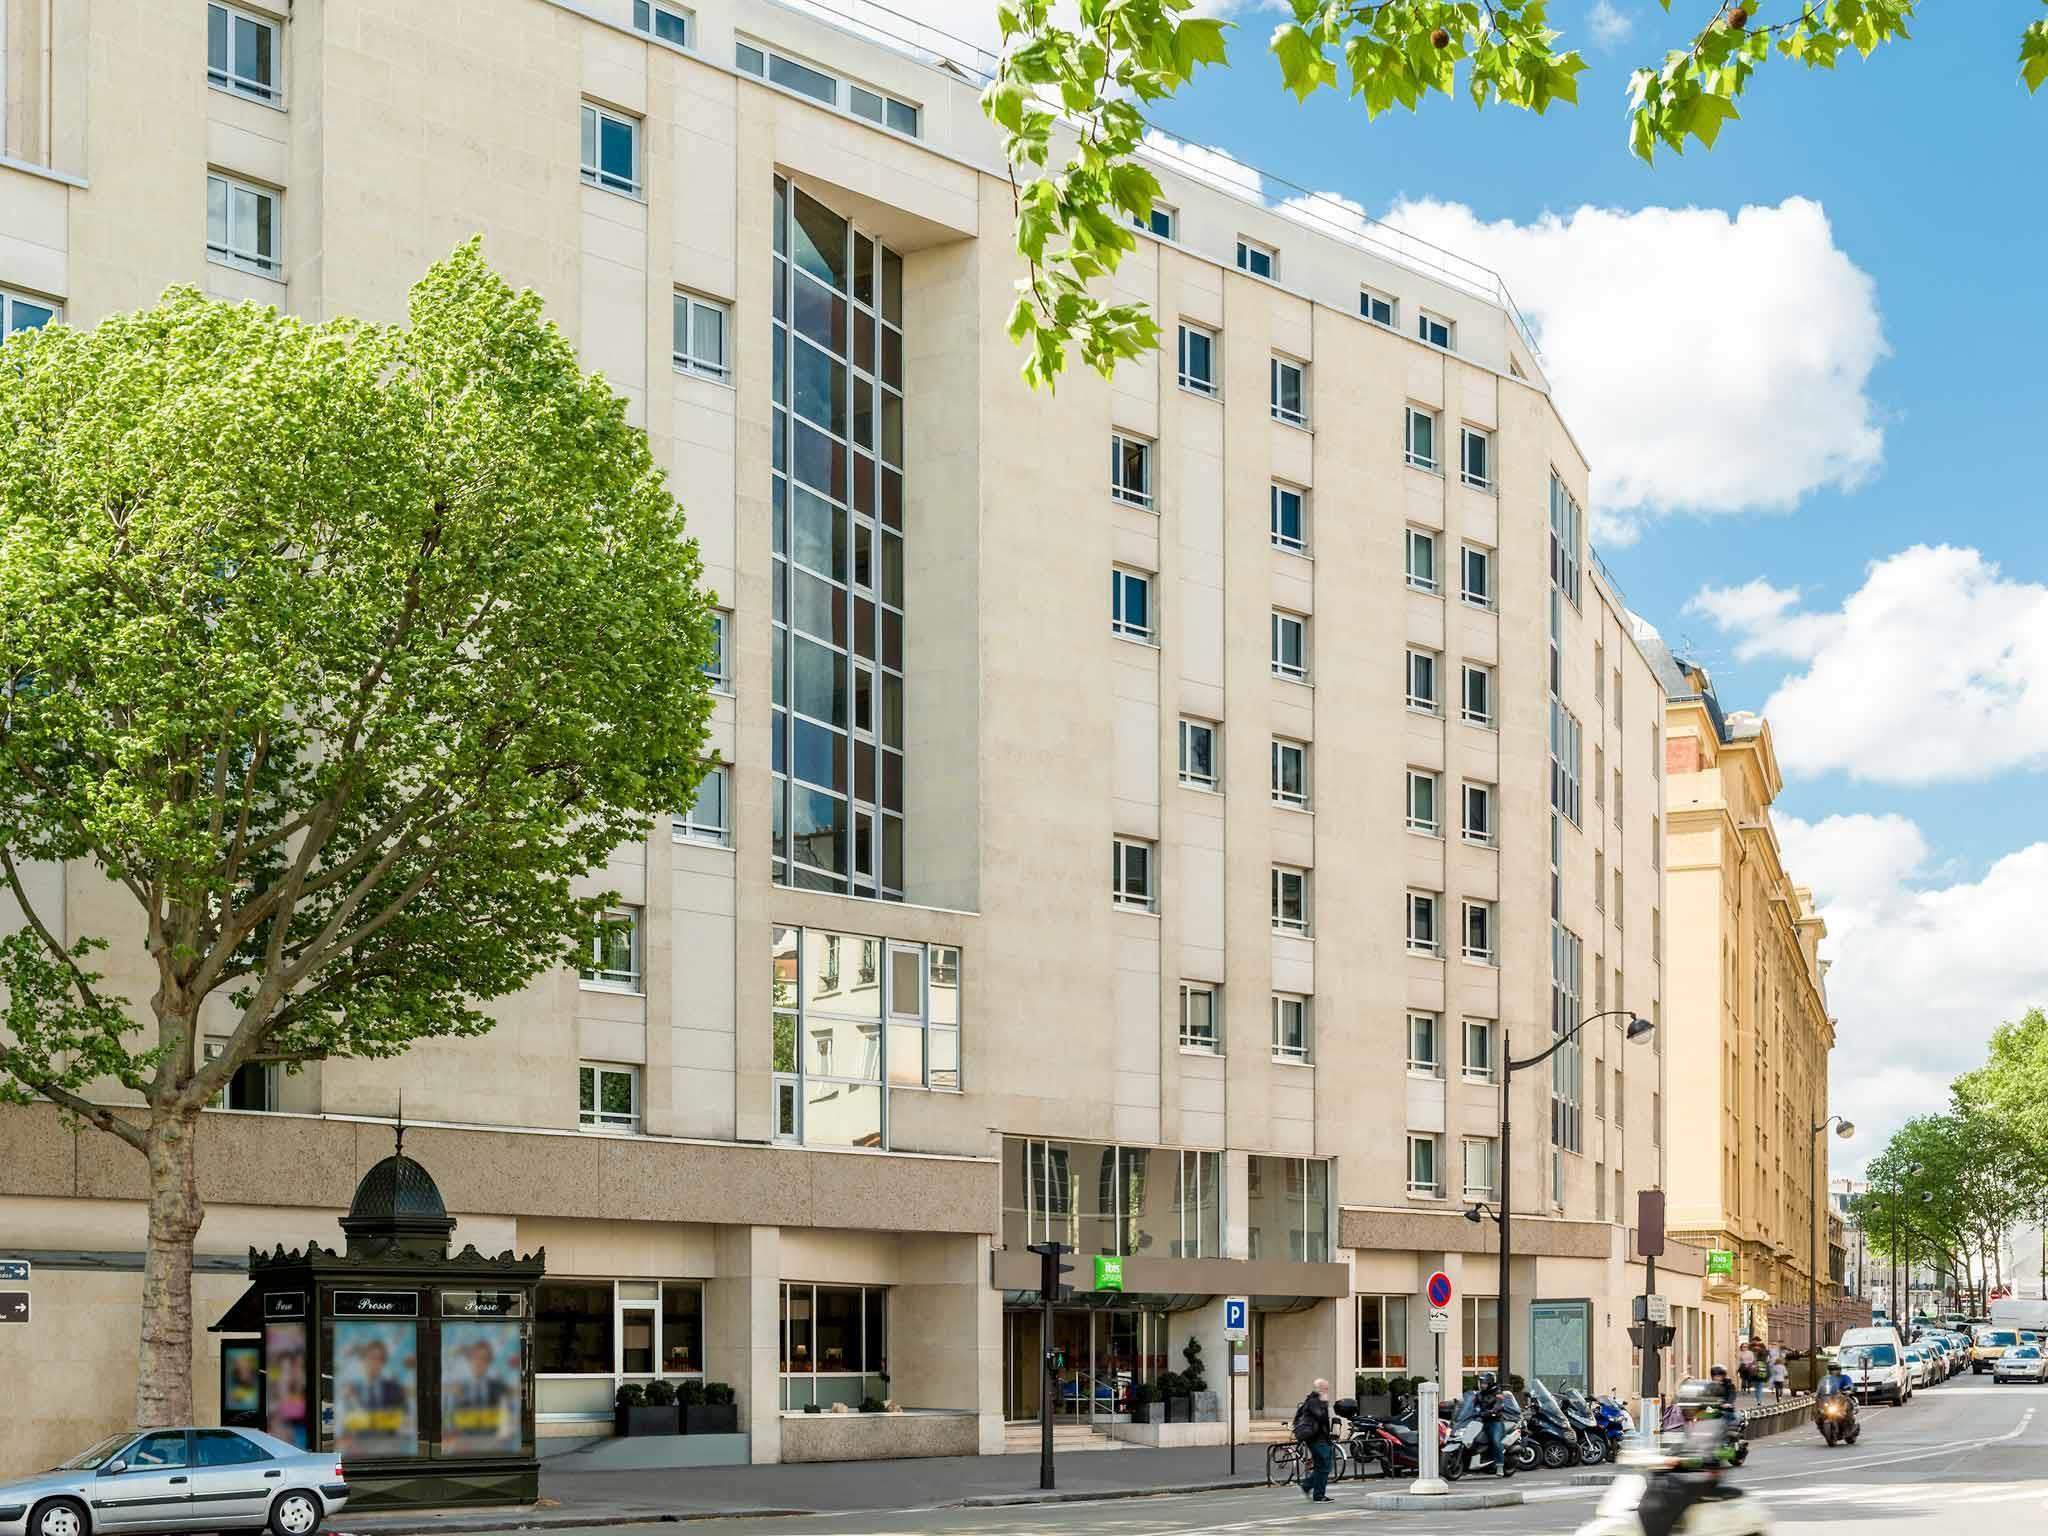 Gare De Paris Best Price On Ibis Styles Paris Gare De L Est Chateau Landon Hotel